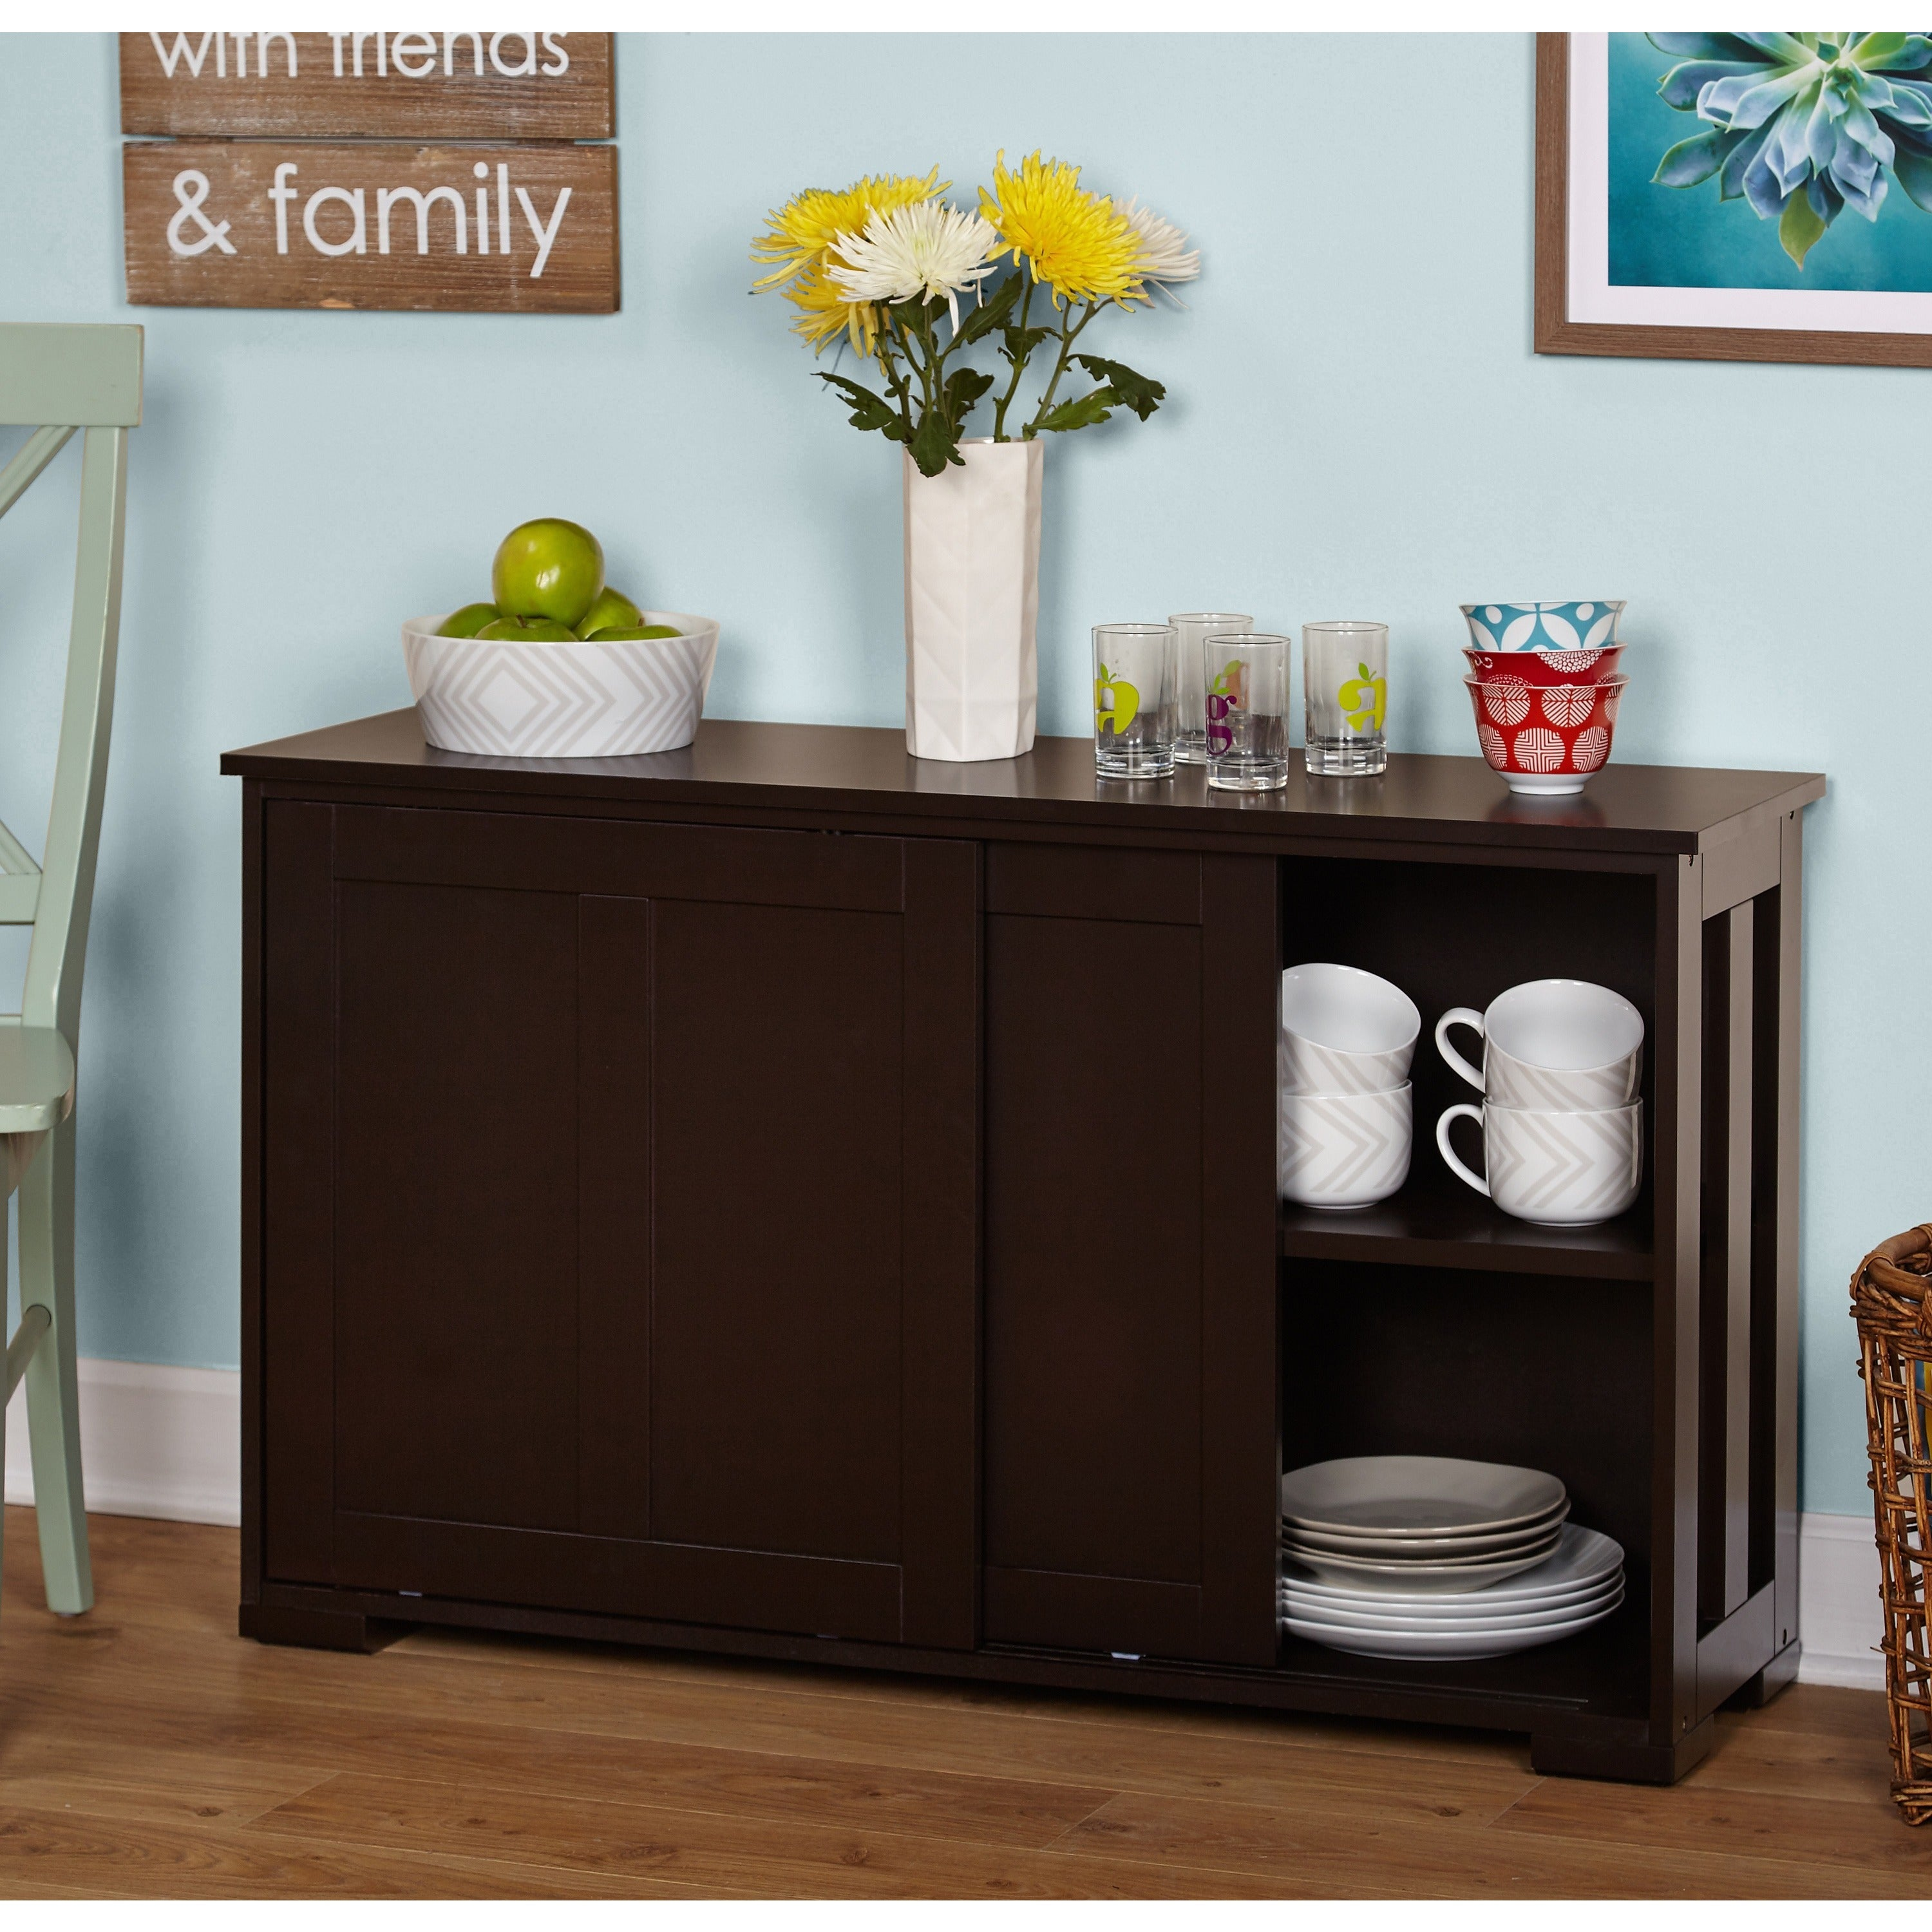 Sliding Door Espresso Cabinet Storage Table Serving Buffet Kitchen